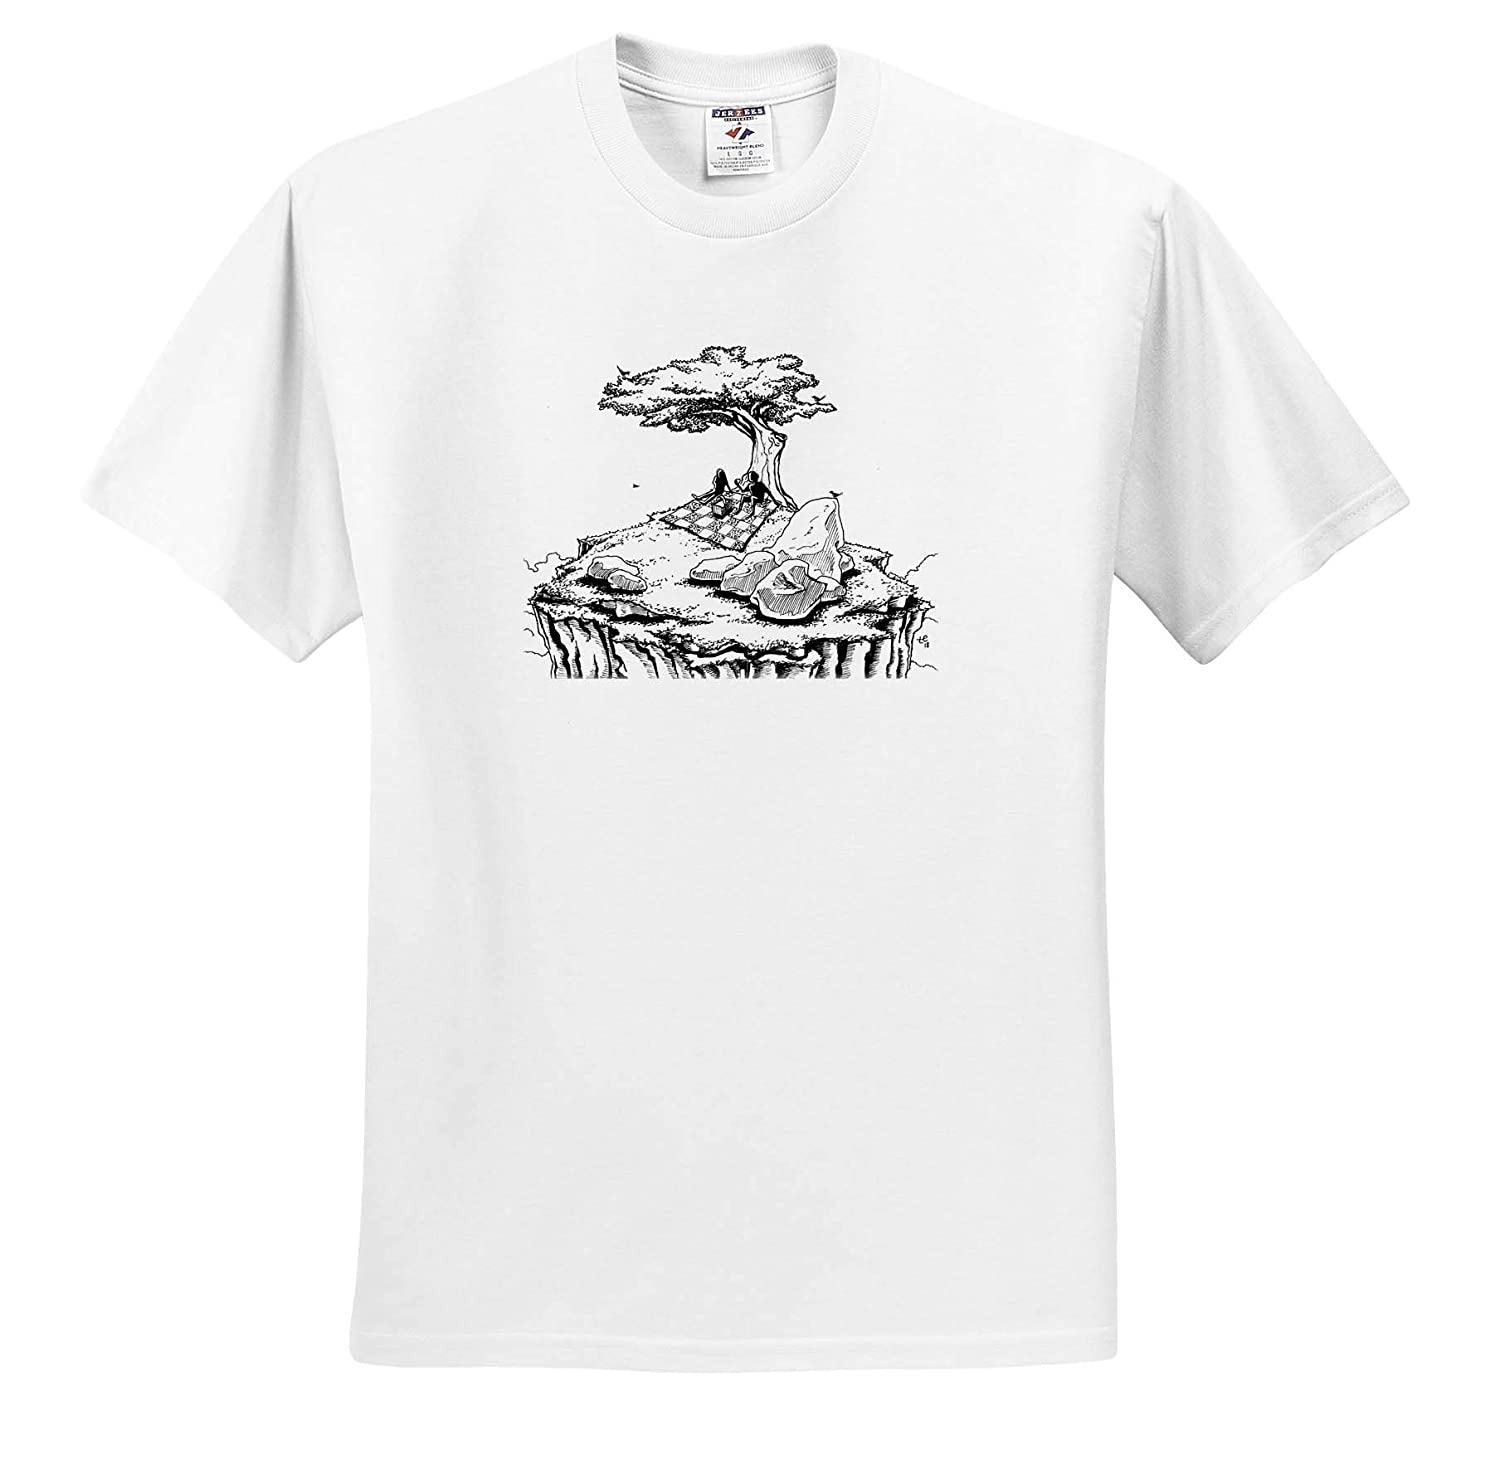 A Secluded Picnic for Two 3dRose Travis ECK Art Adult T-Shirt XL ts/_317517